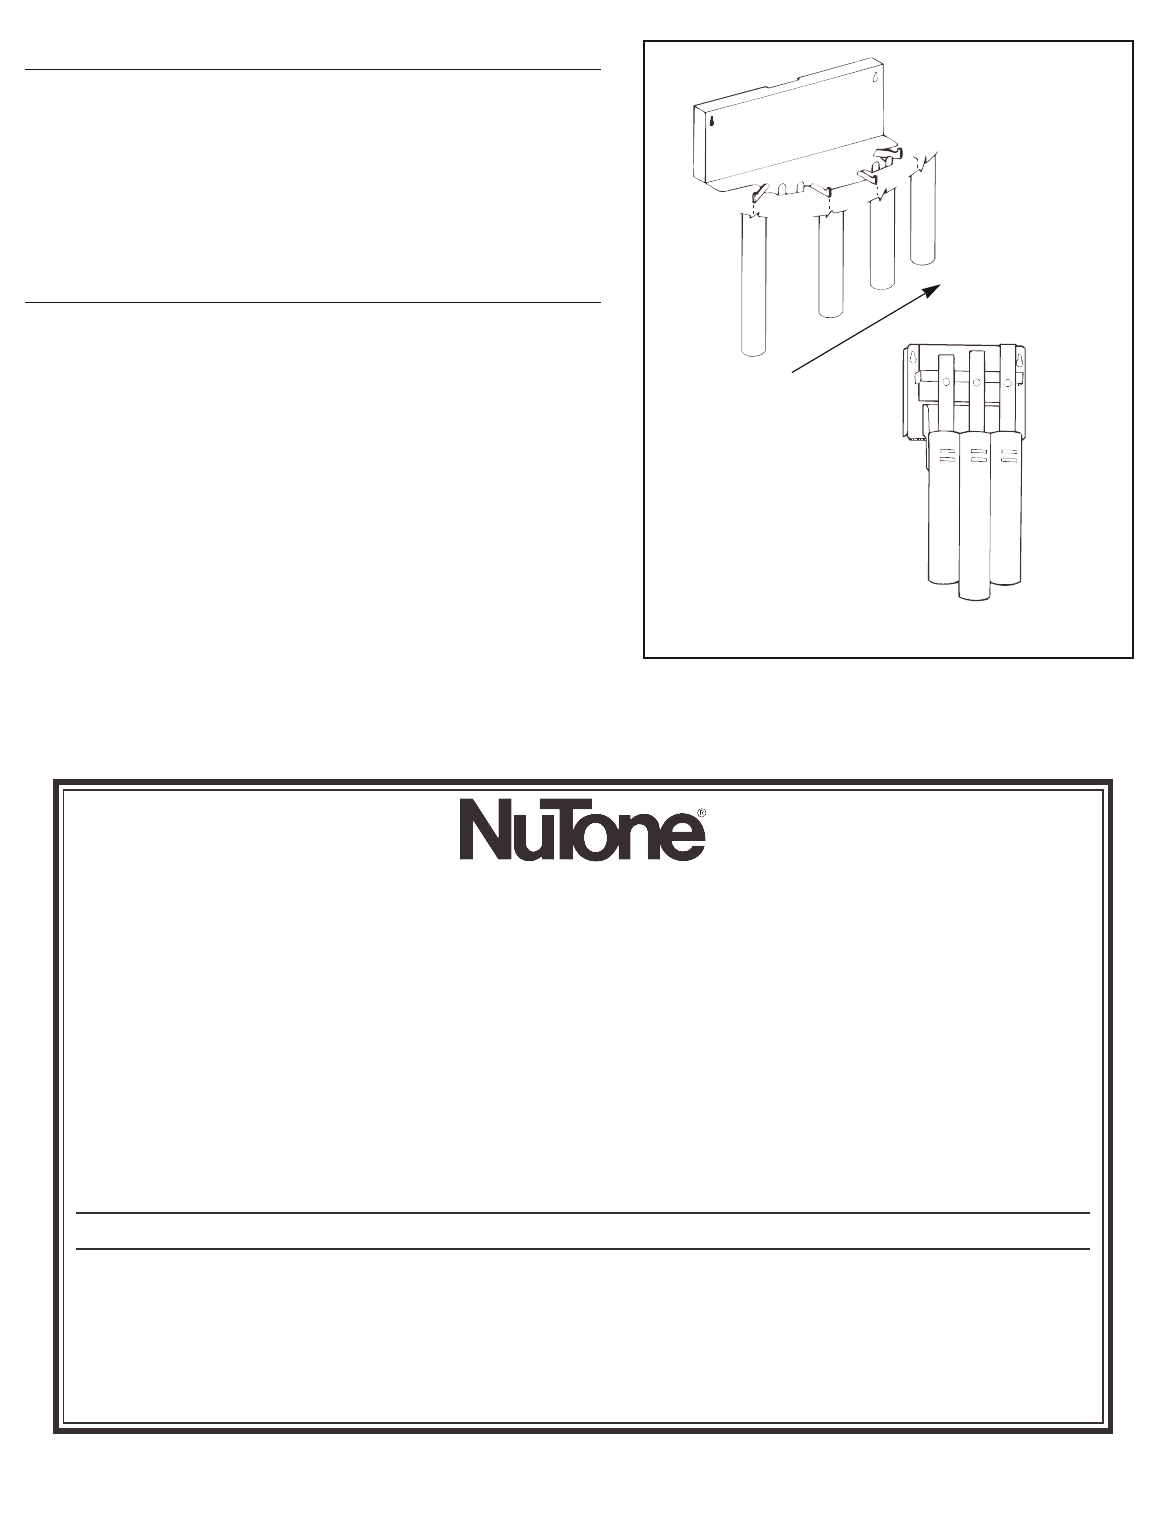 Nutone La 151wm Users Manual 37990 Instruction Sheet Volume Control Wiring Diagram For Wall Product Specifications Subject To Change Without Notice Printed In Usa Rev 12 96 Part No